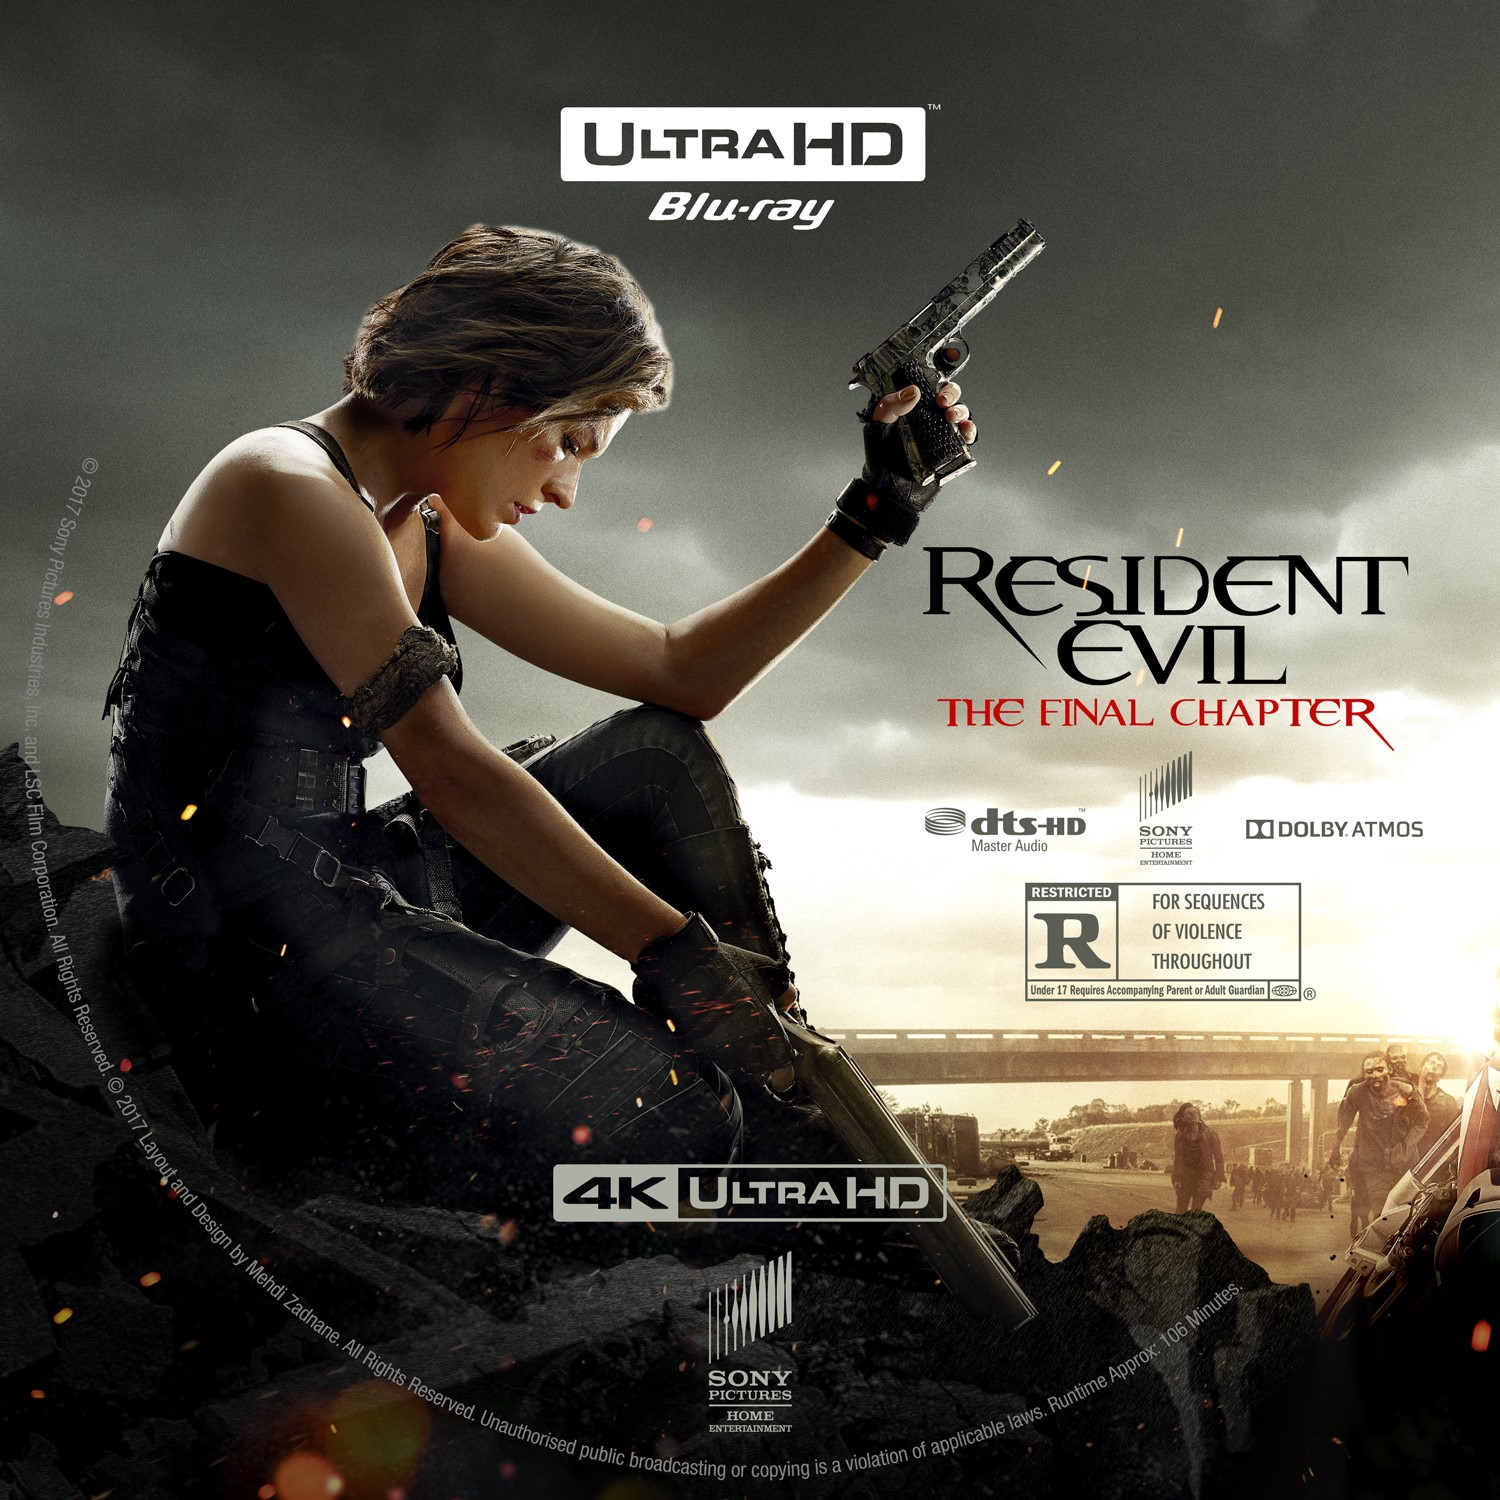 Resident Evil The Final Chapter Bluray 4k UltraHD Label